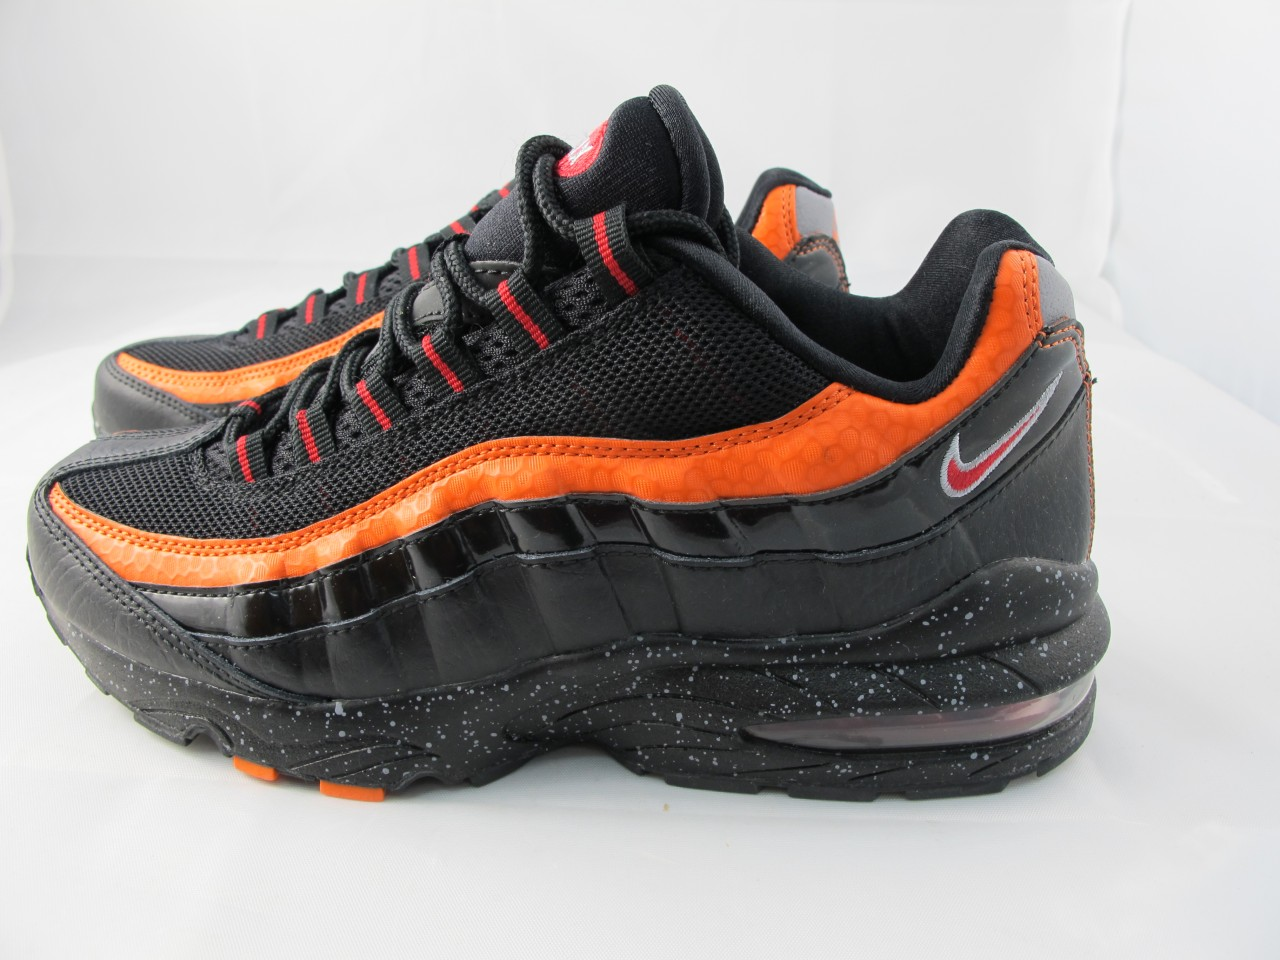 061777389c NEW JUNIORS NIKE AIR MAX '95 307565-064 BLACK/DARK RED-ORANGE BLZ ...